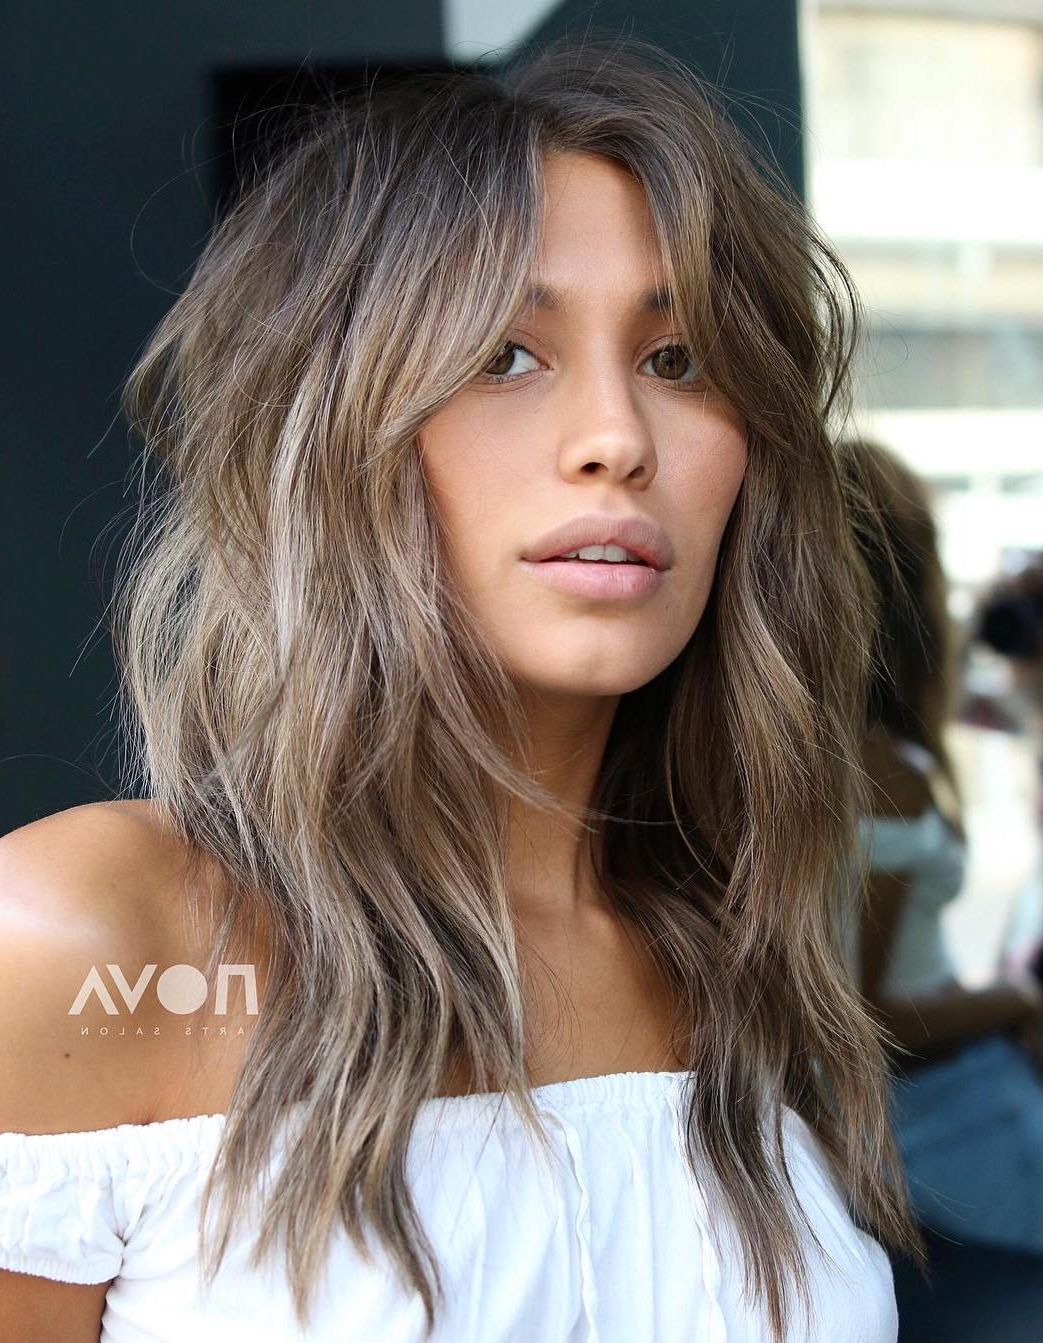 40 Modern Shag Haircuts For Women To Make A Splash With Recent Razored Shaggy Chocolate And Caramel Bob Hairstyles (View 3 of 20)